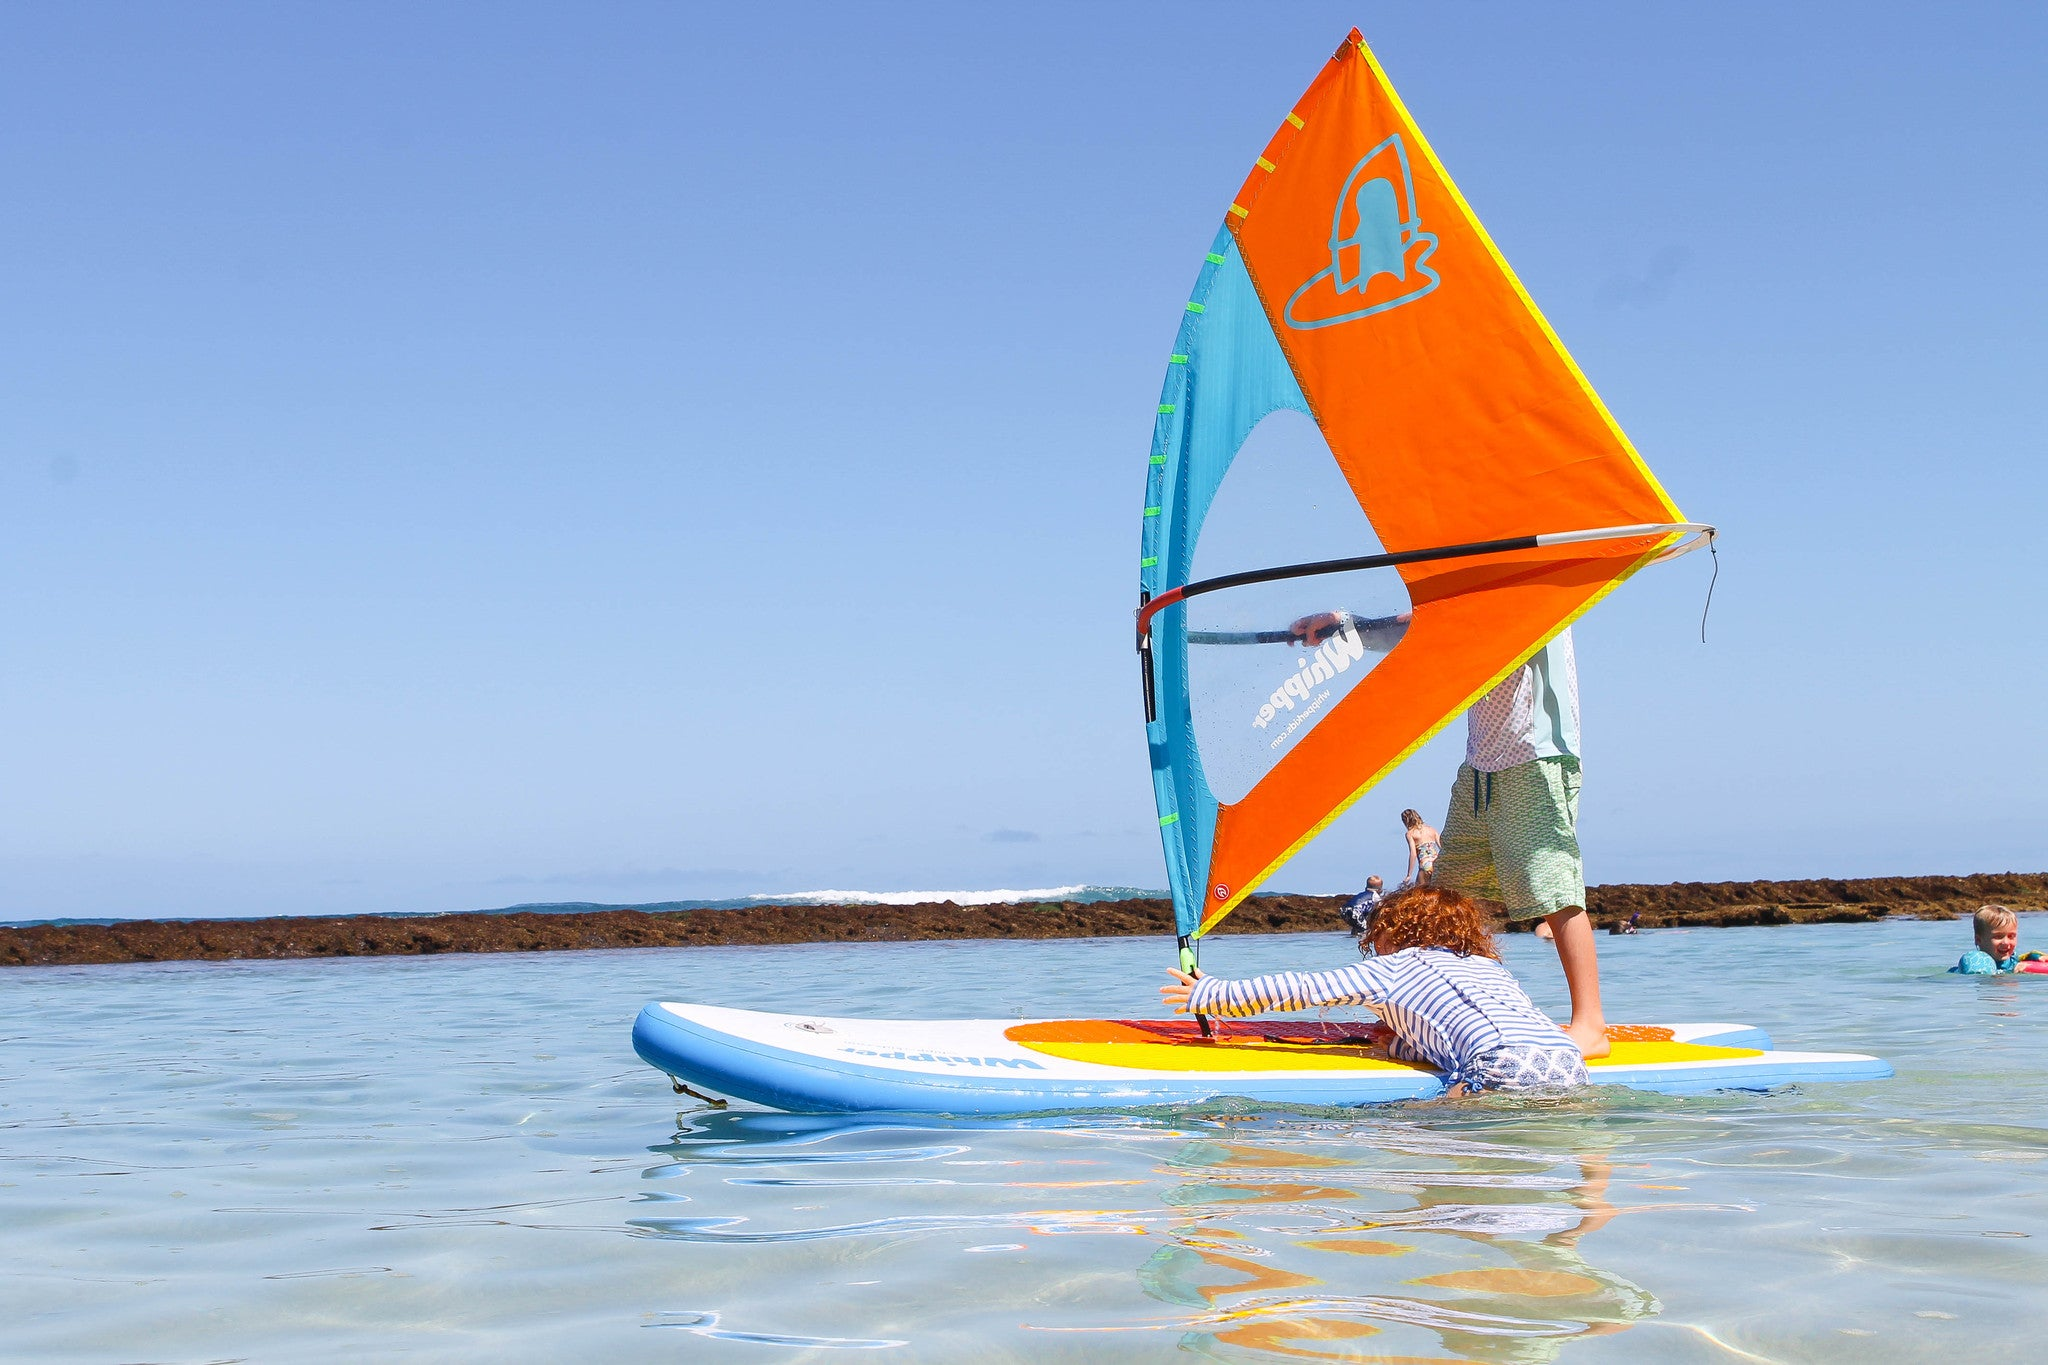 meet the whippersail the best windsurf rig for kids ever made